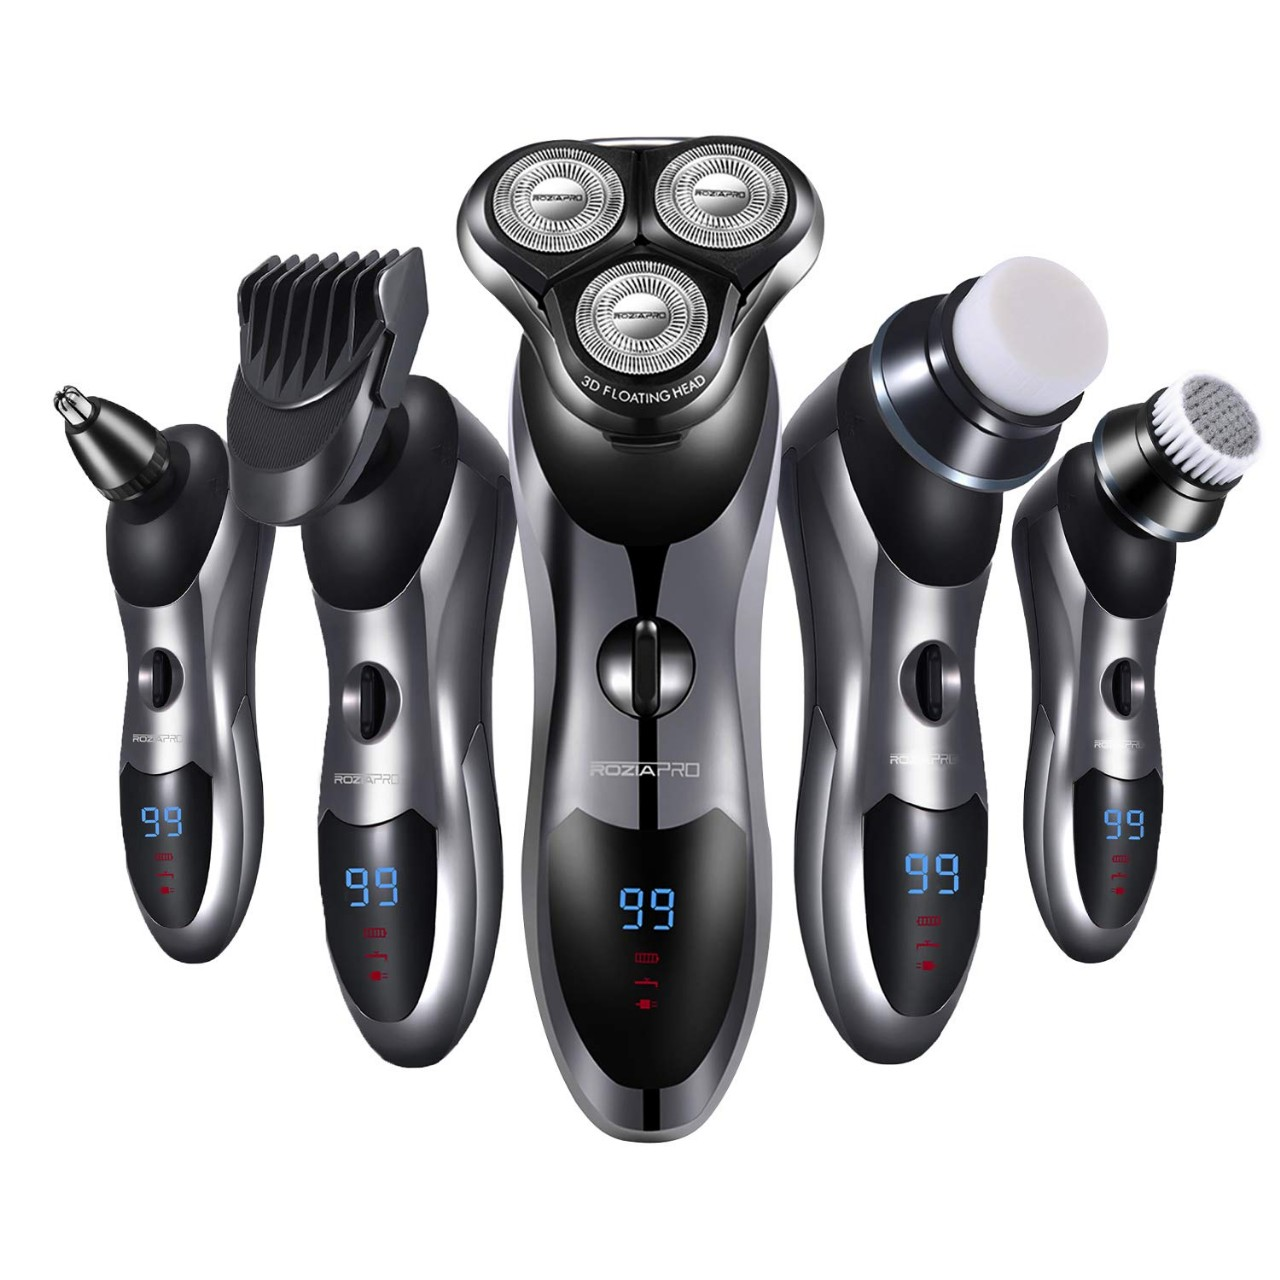 Electric Razor for Men 5 in 1 Rotary Shavers Beard Trimmer Nose Hair Trimmer Wet and Dry Electric